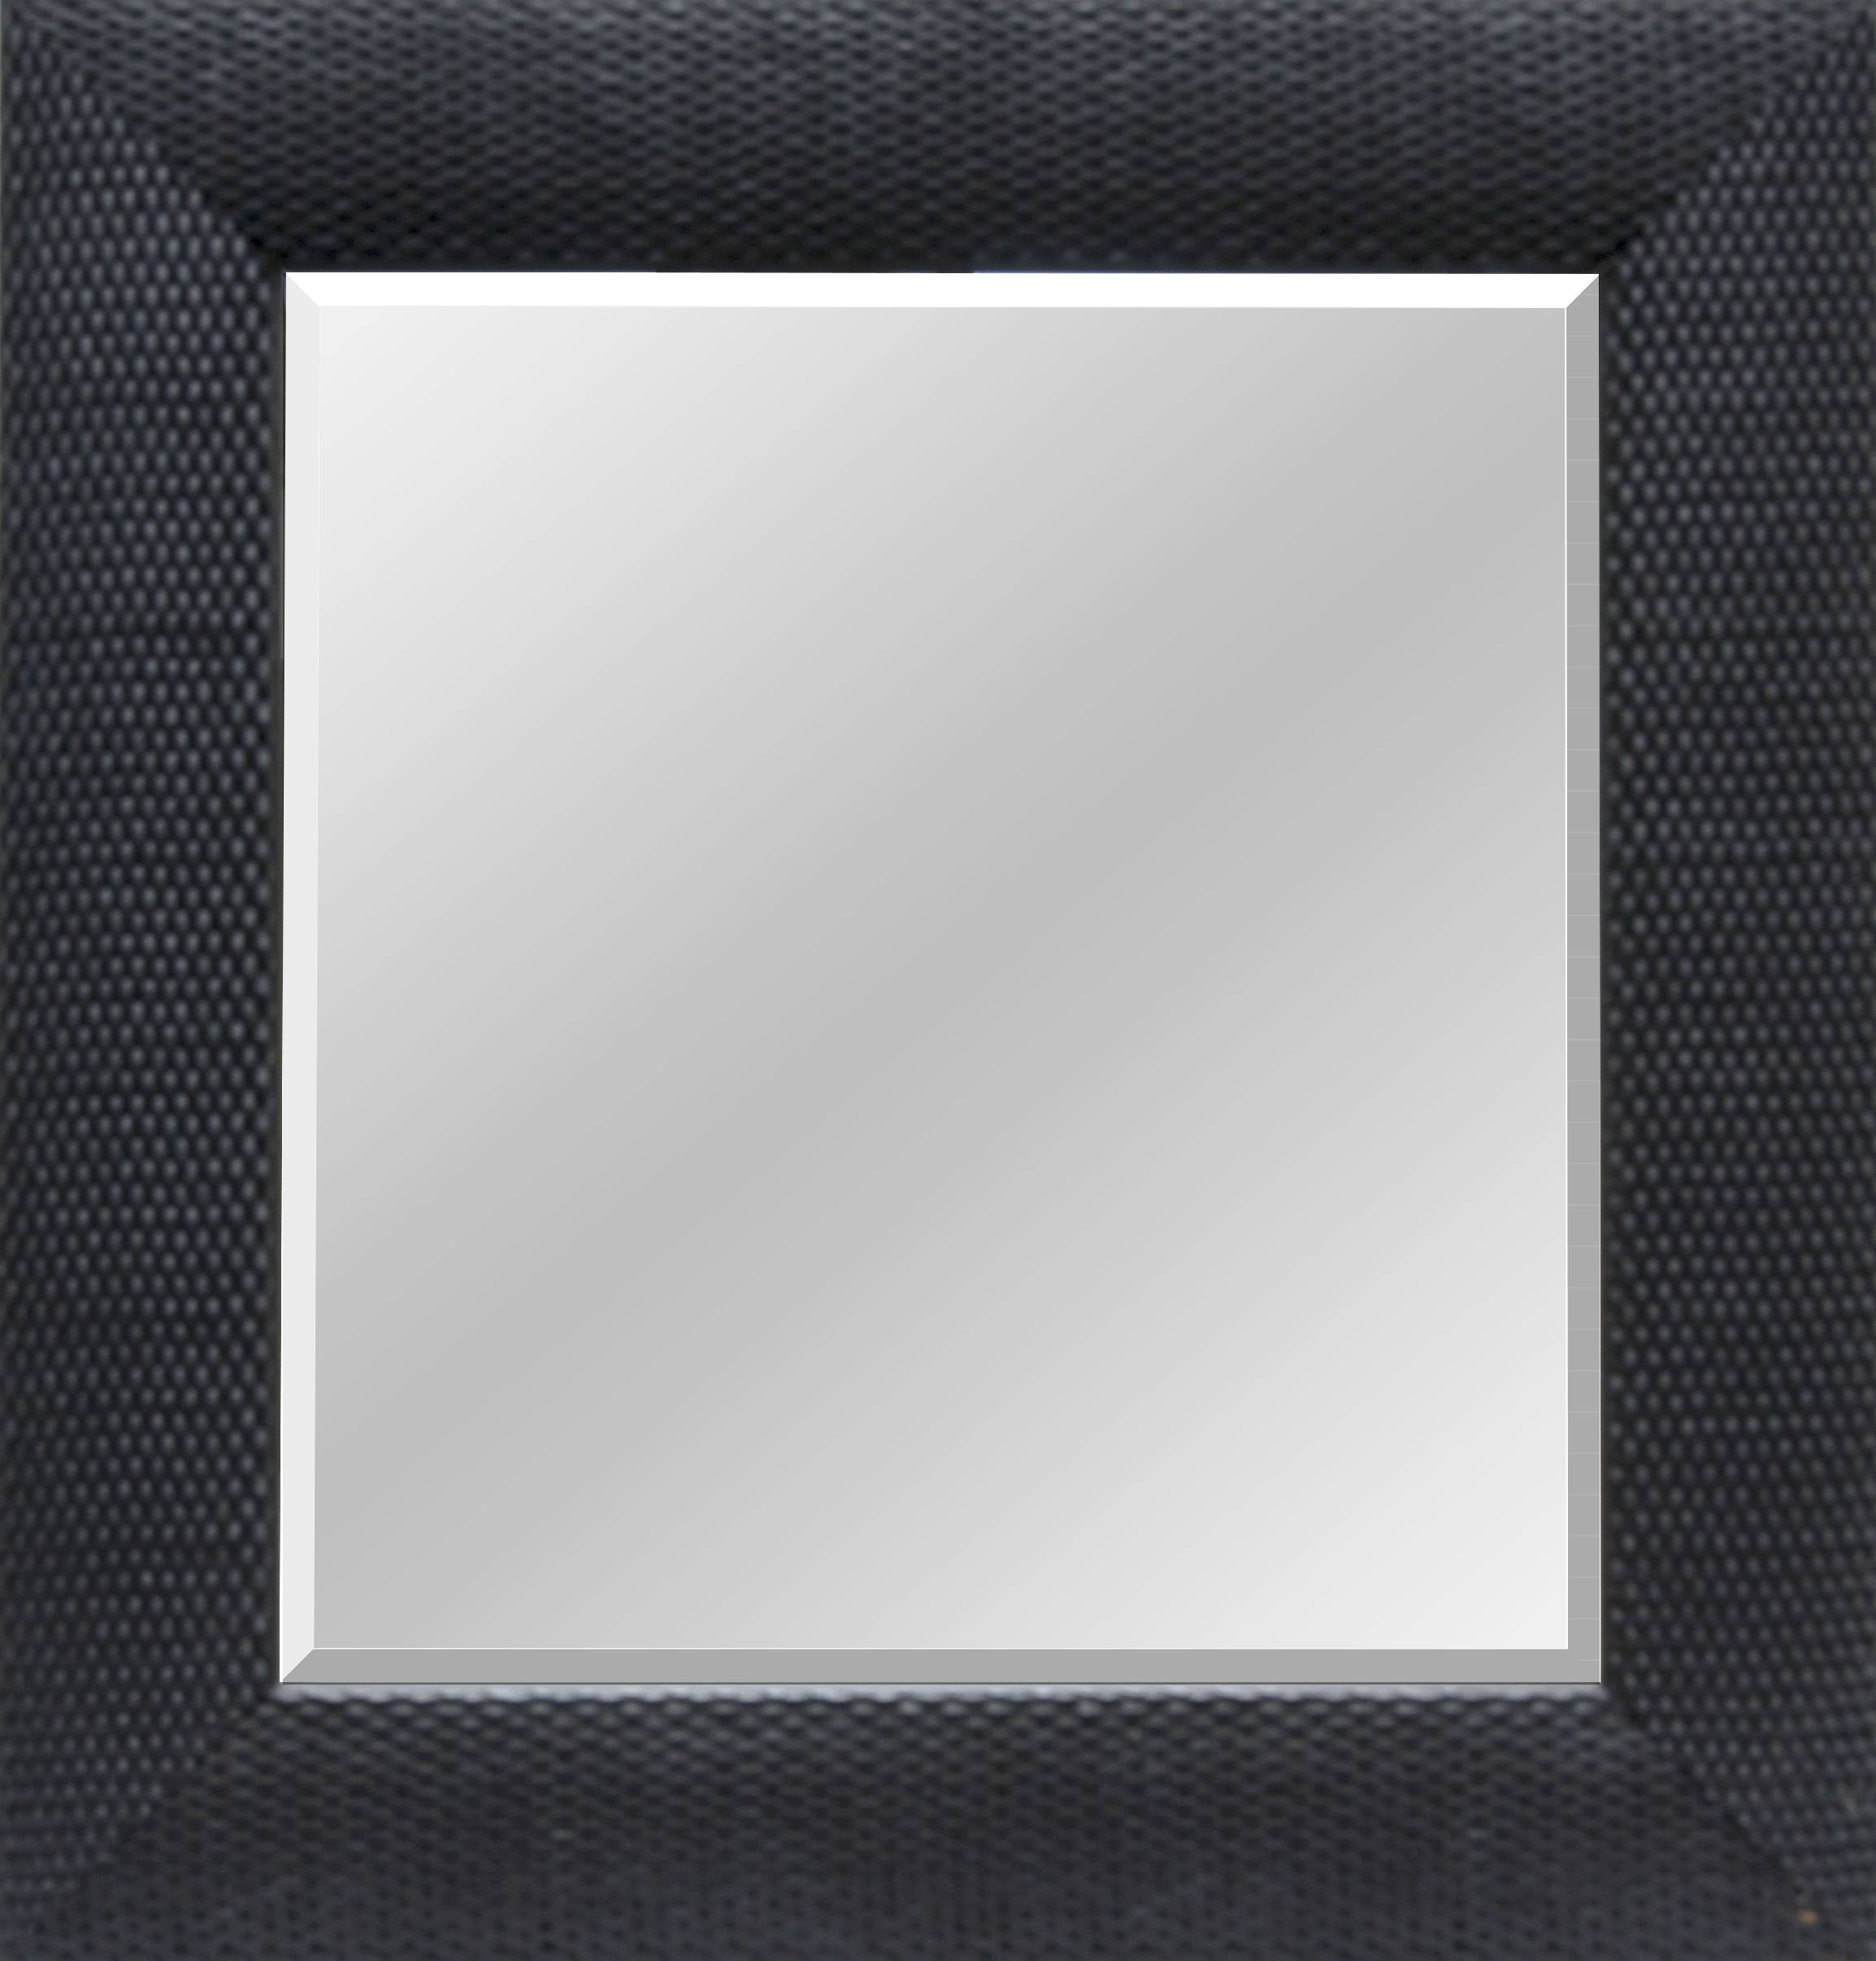 Black Mirrors For Sale – Harpsounds.co intended for Black Bevelled Mirrors (Image 2 of 13)